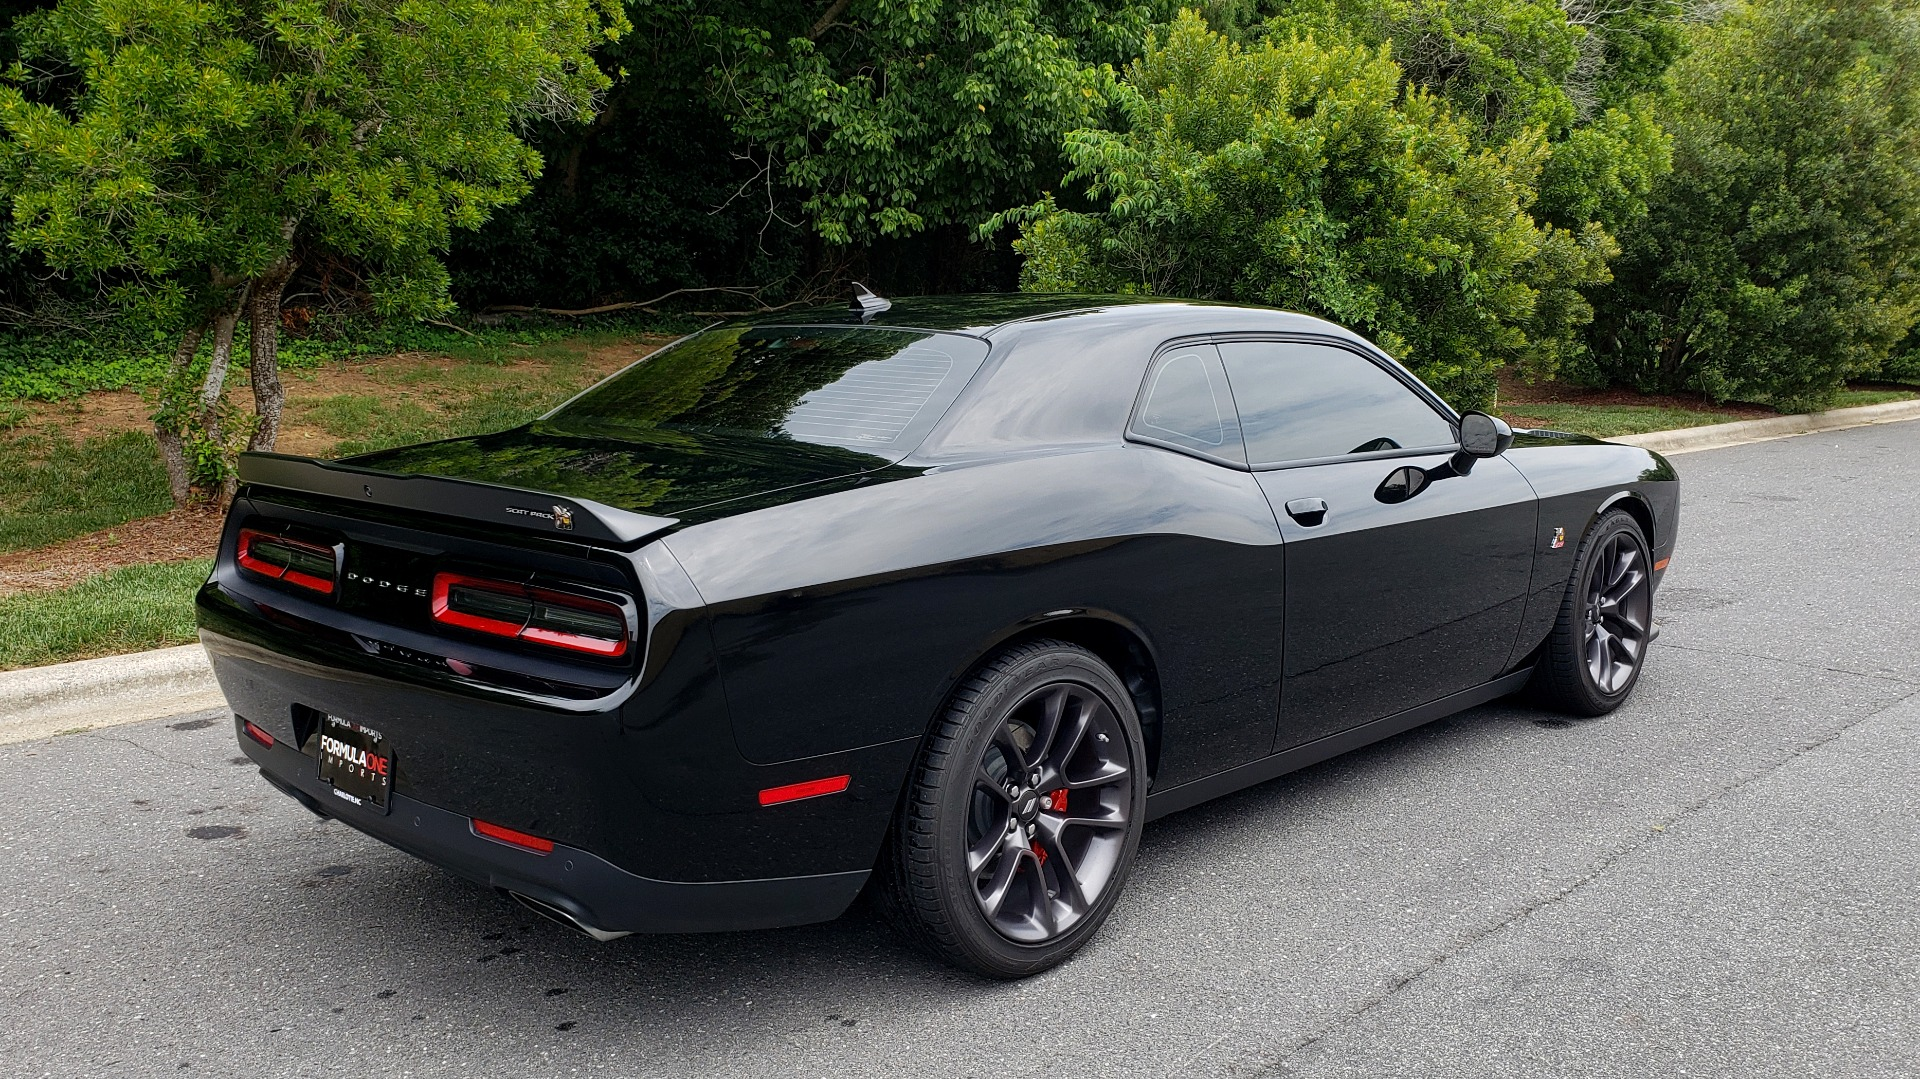 Used 2020 Dodge Challenger R/T Scat Pack for sale $42,995 at Formula Imports in Charlotte NC 28227 9